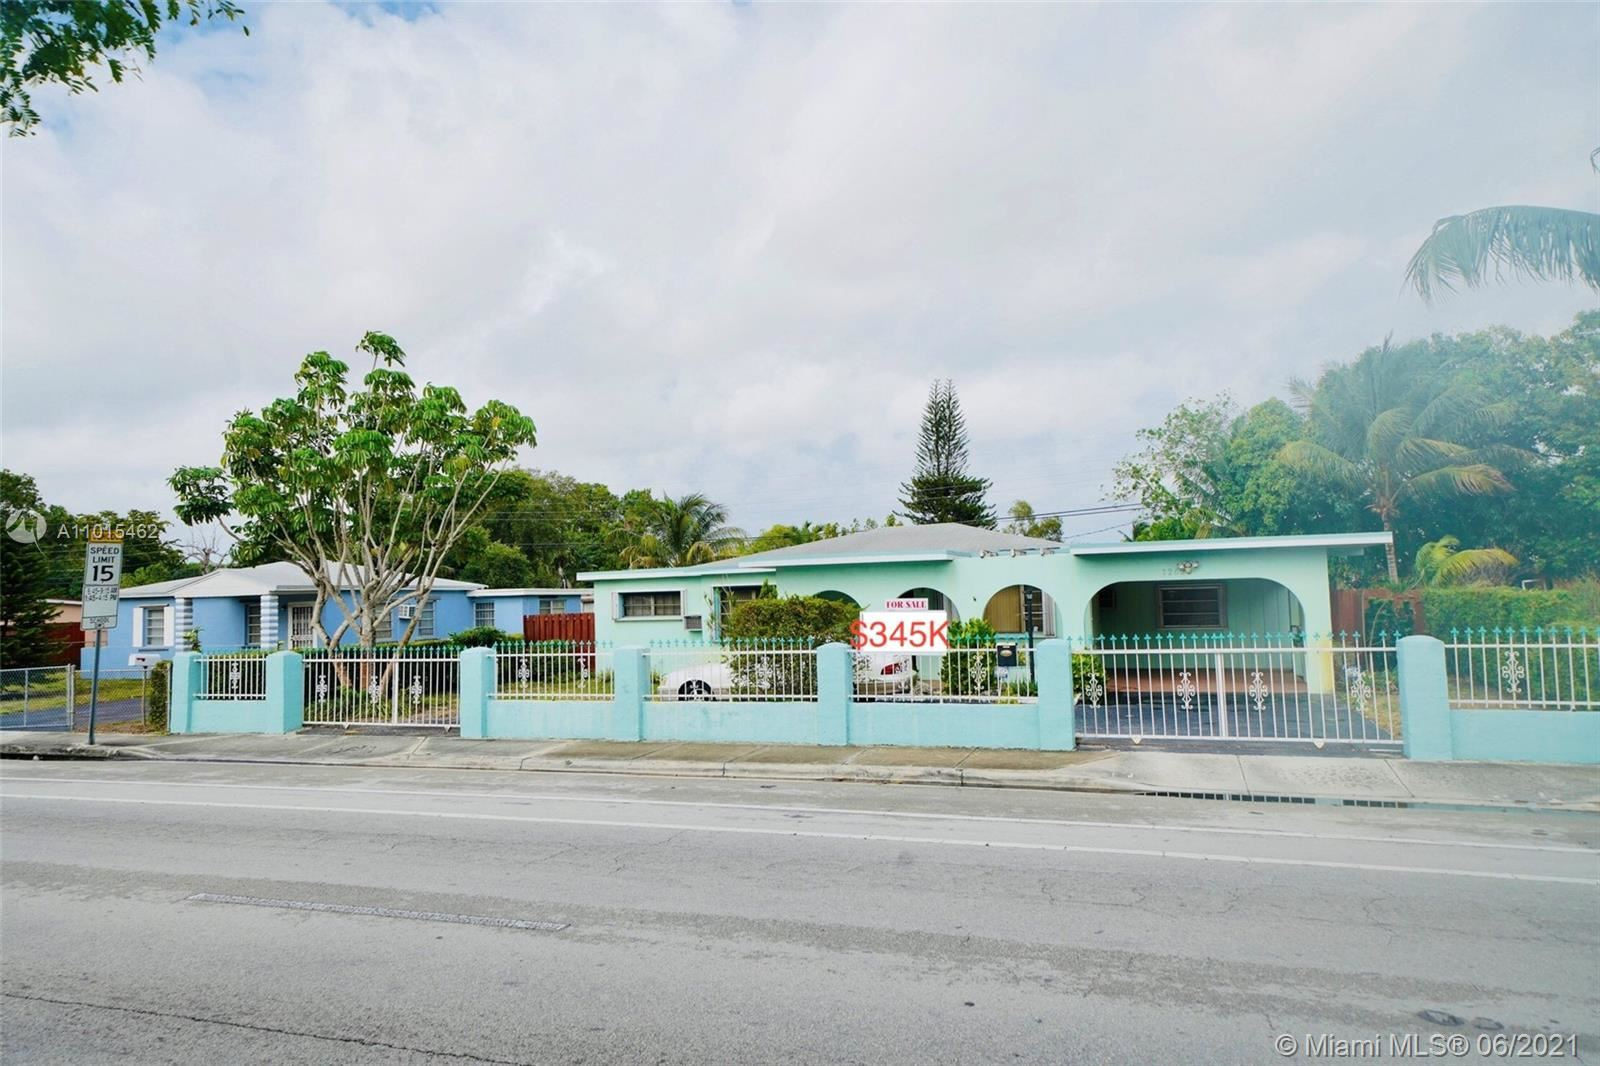 12620 NW 22nd Ave, Miami, FL 33167 - #: A11015462